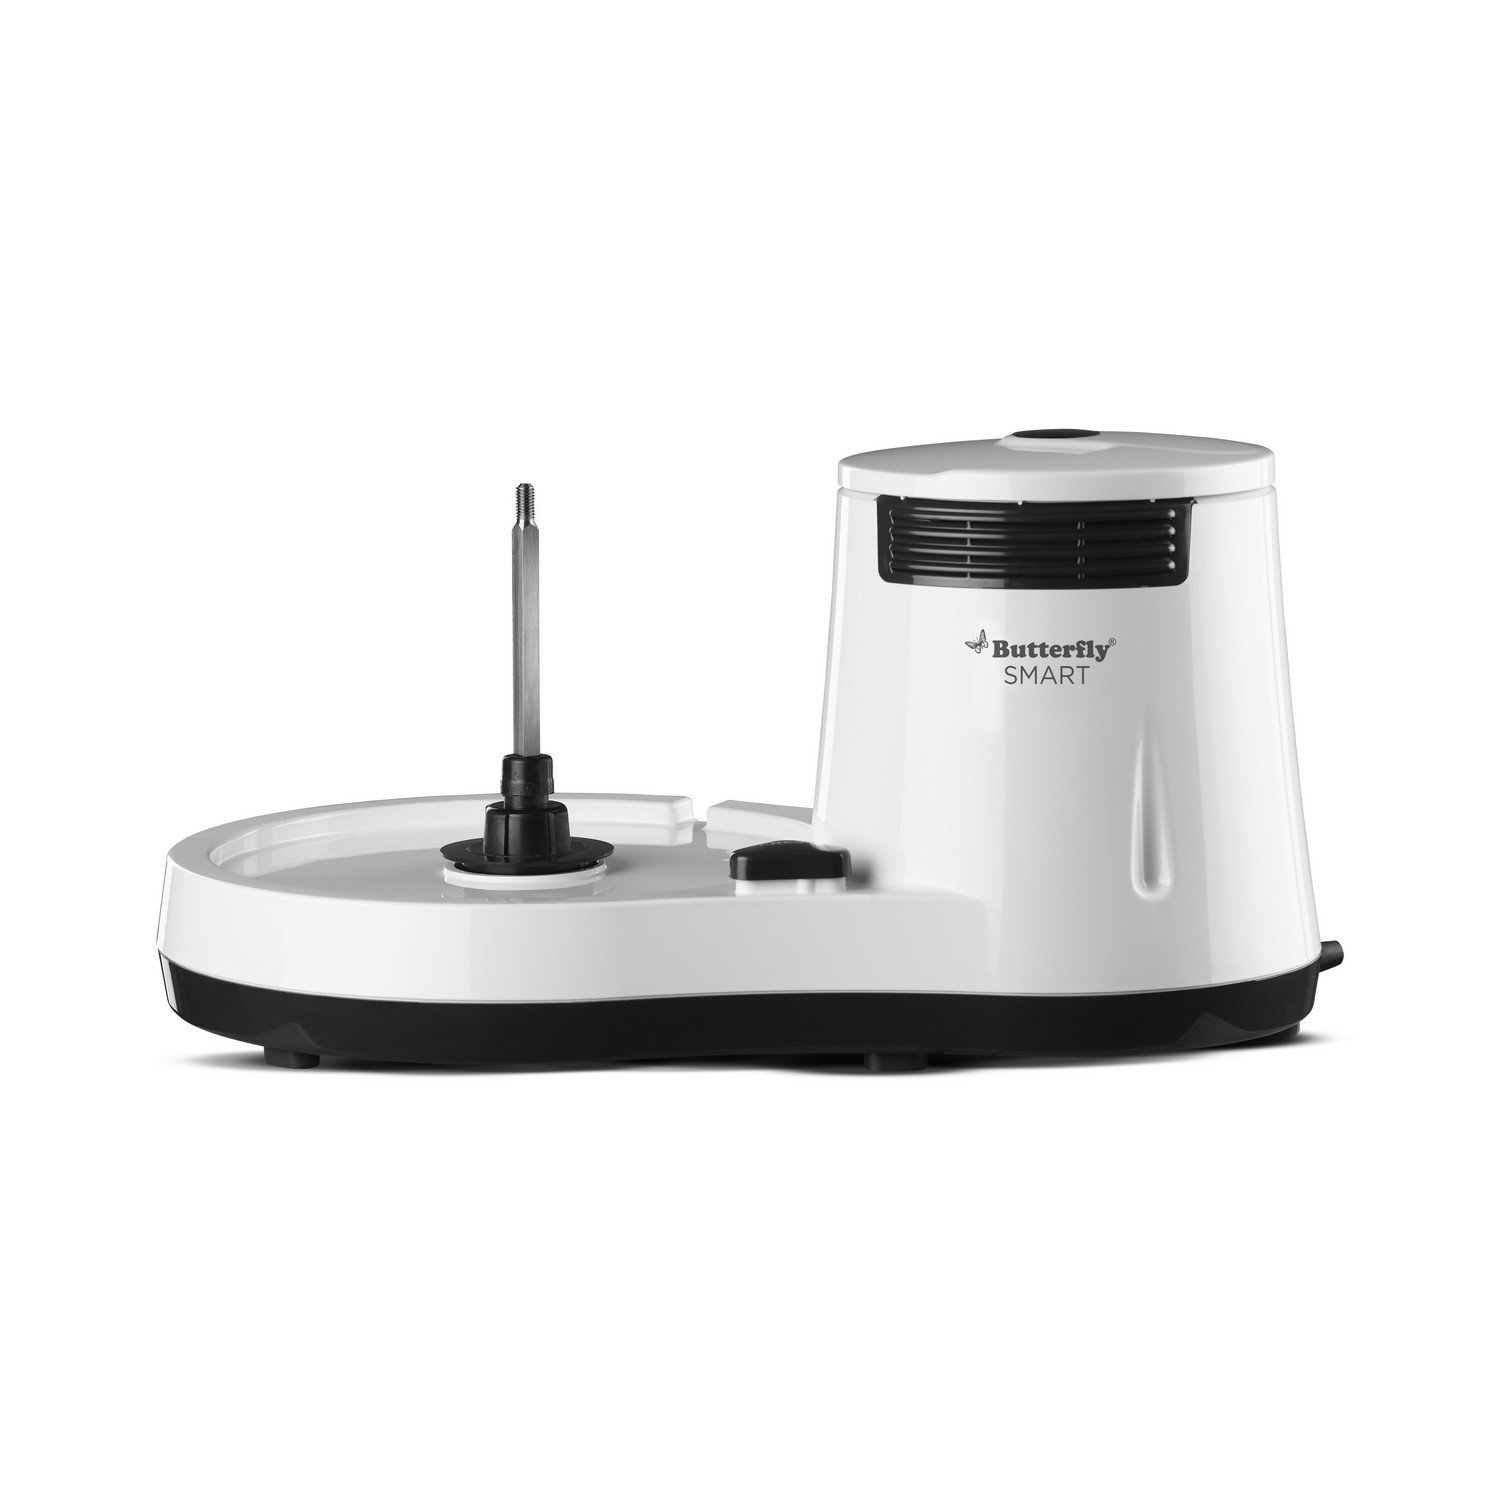 Butterfly Smart 150-Watt Table Top Wet Grinder with Coconut Scrapper Attachment (White)